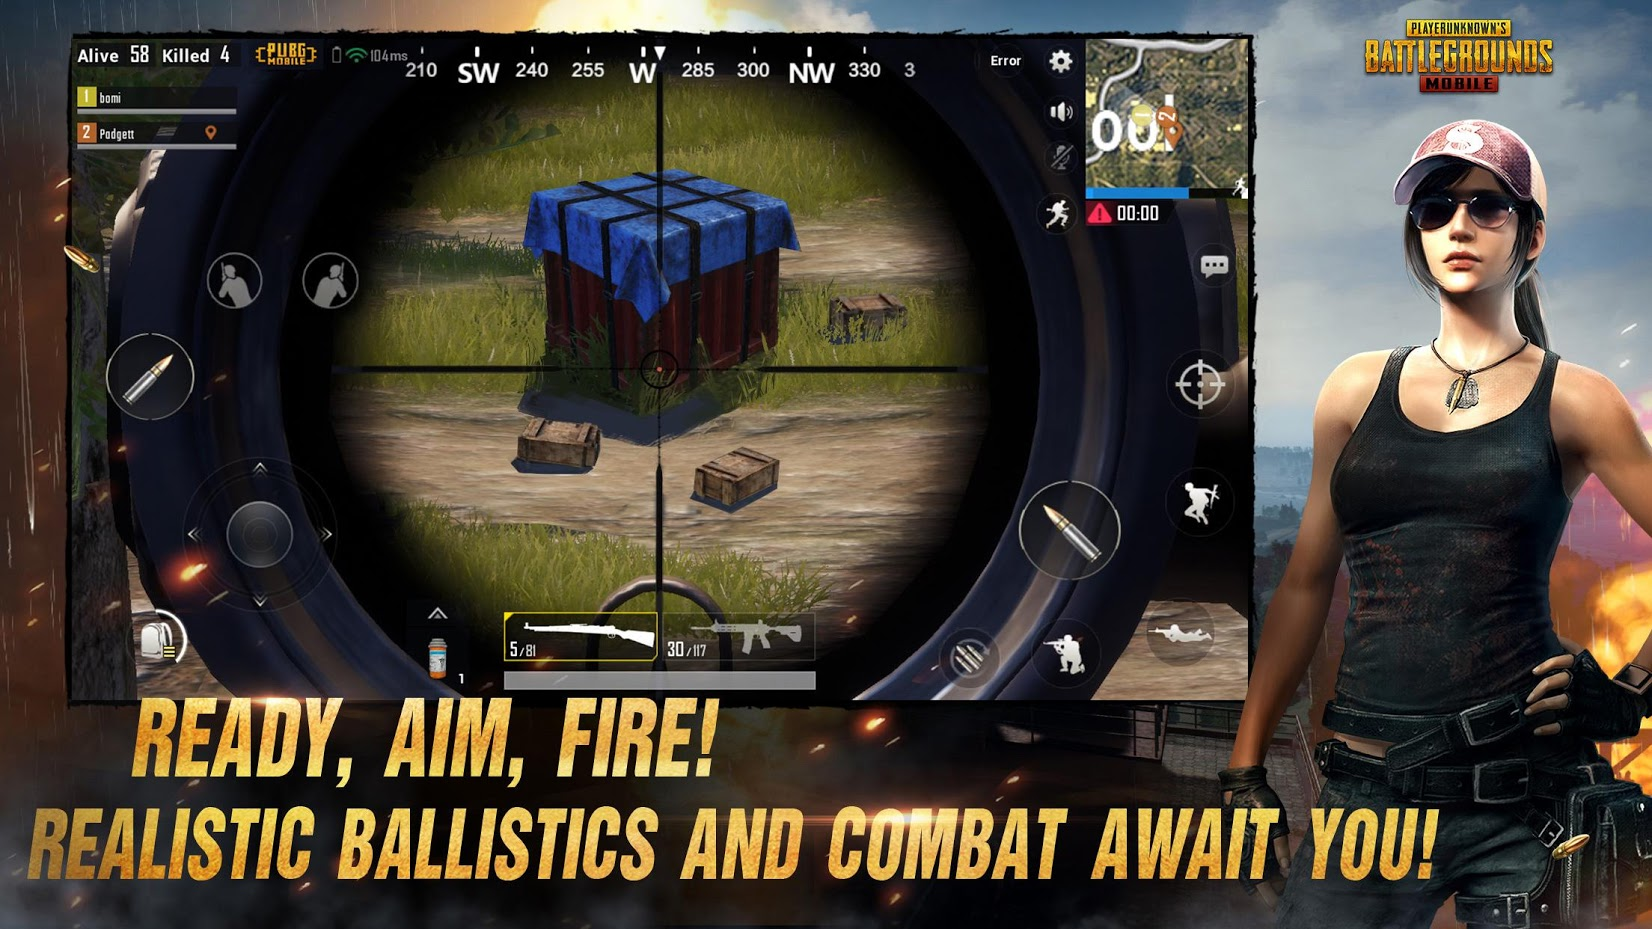 Pubg Mobile Hdr Extreme Realistic Gameplay Android Ios: PUBG Mobile Official Emulator For PC